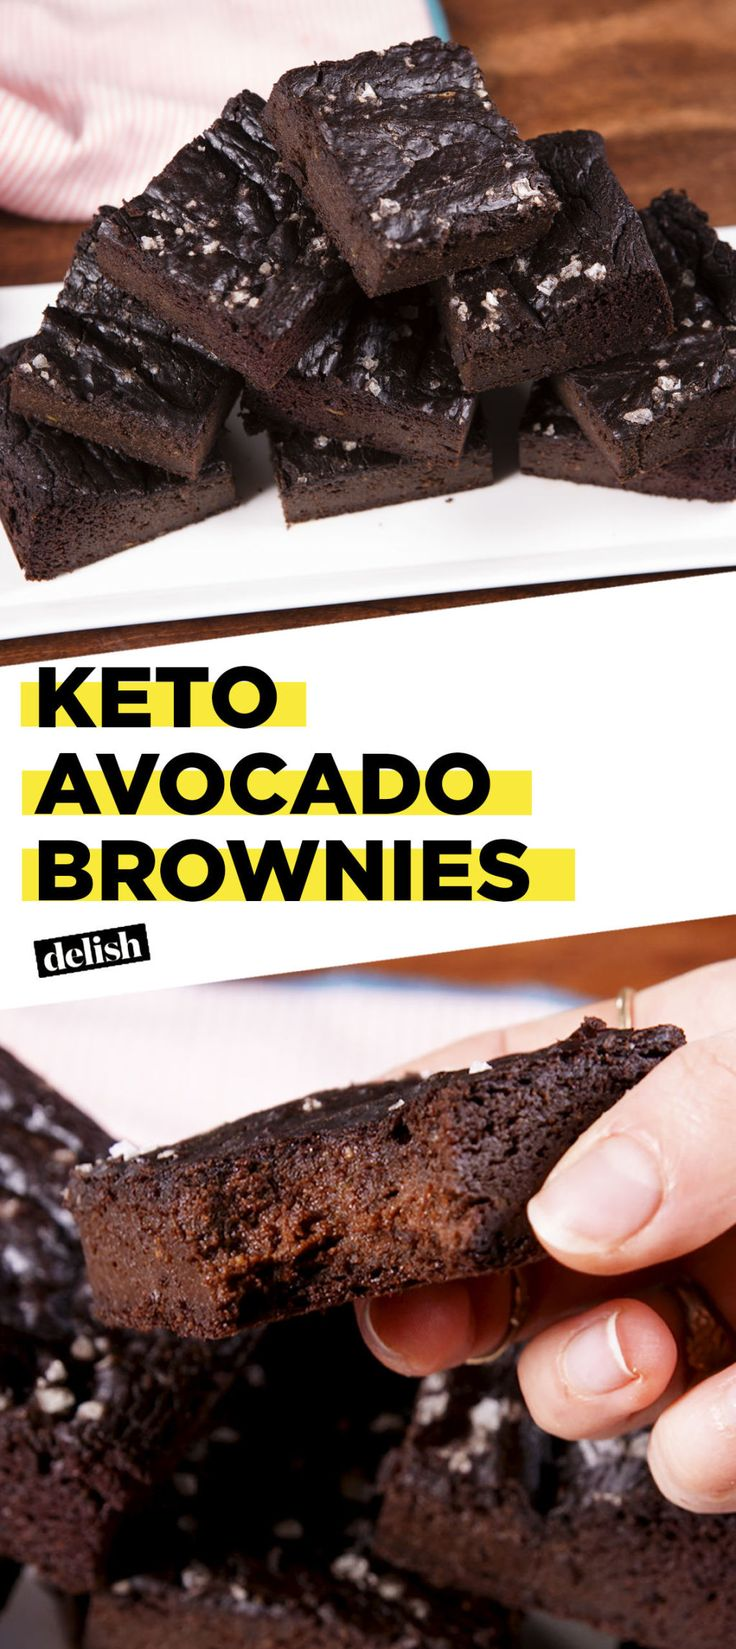 These Keto Brownies Have A Surprising Secret Ingredient - Delish.com